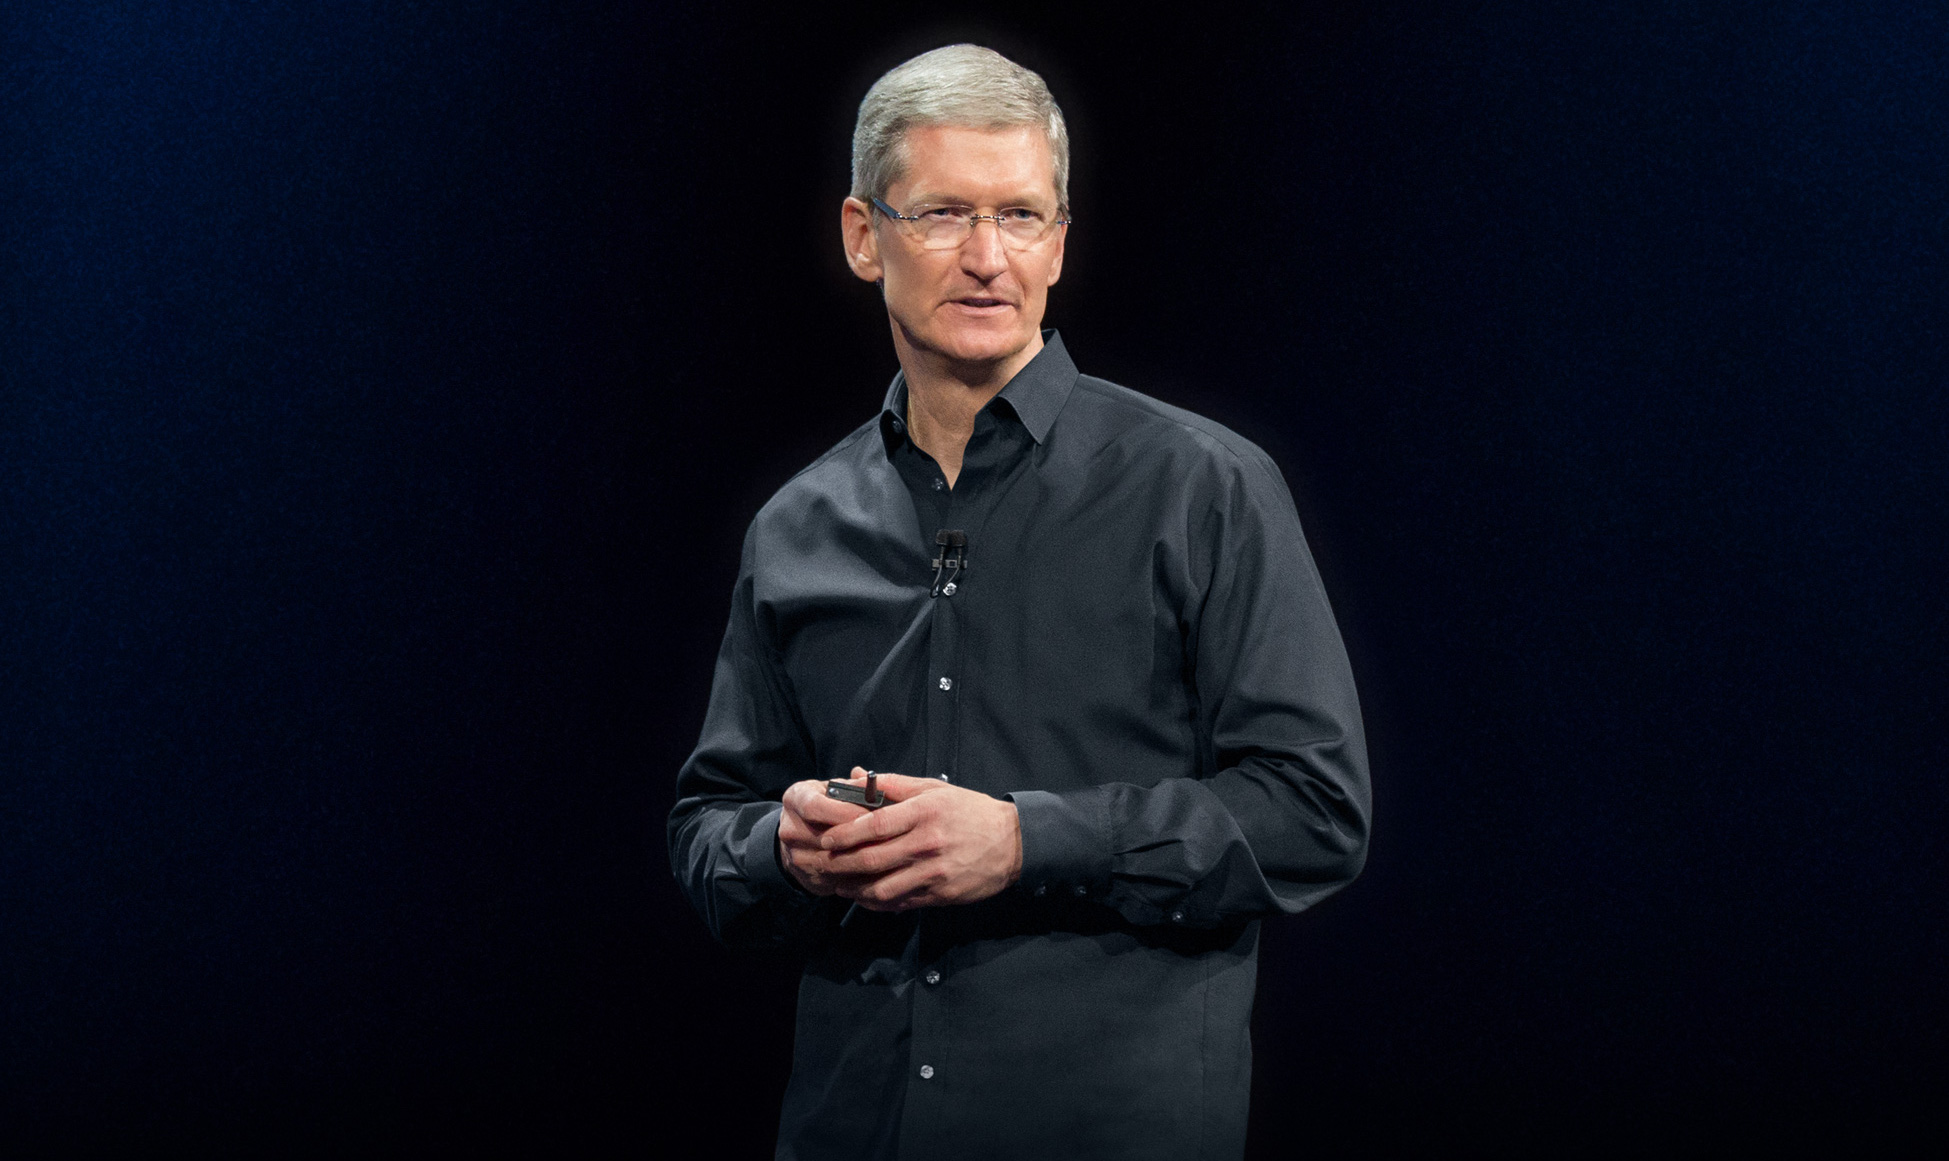 Apple vs. intelligence. The full text of the open letter from Tim cook